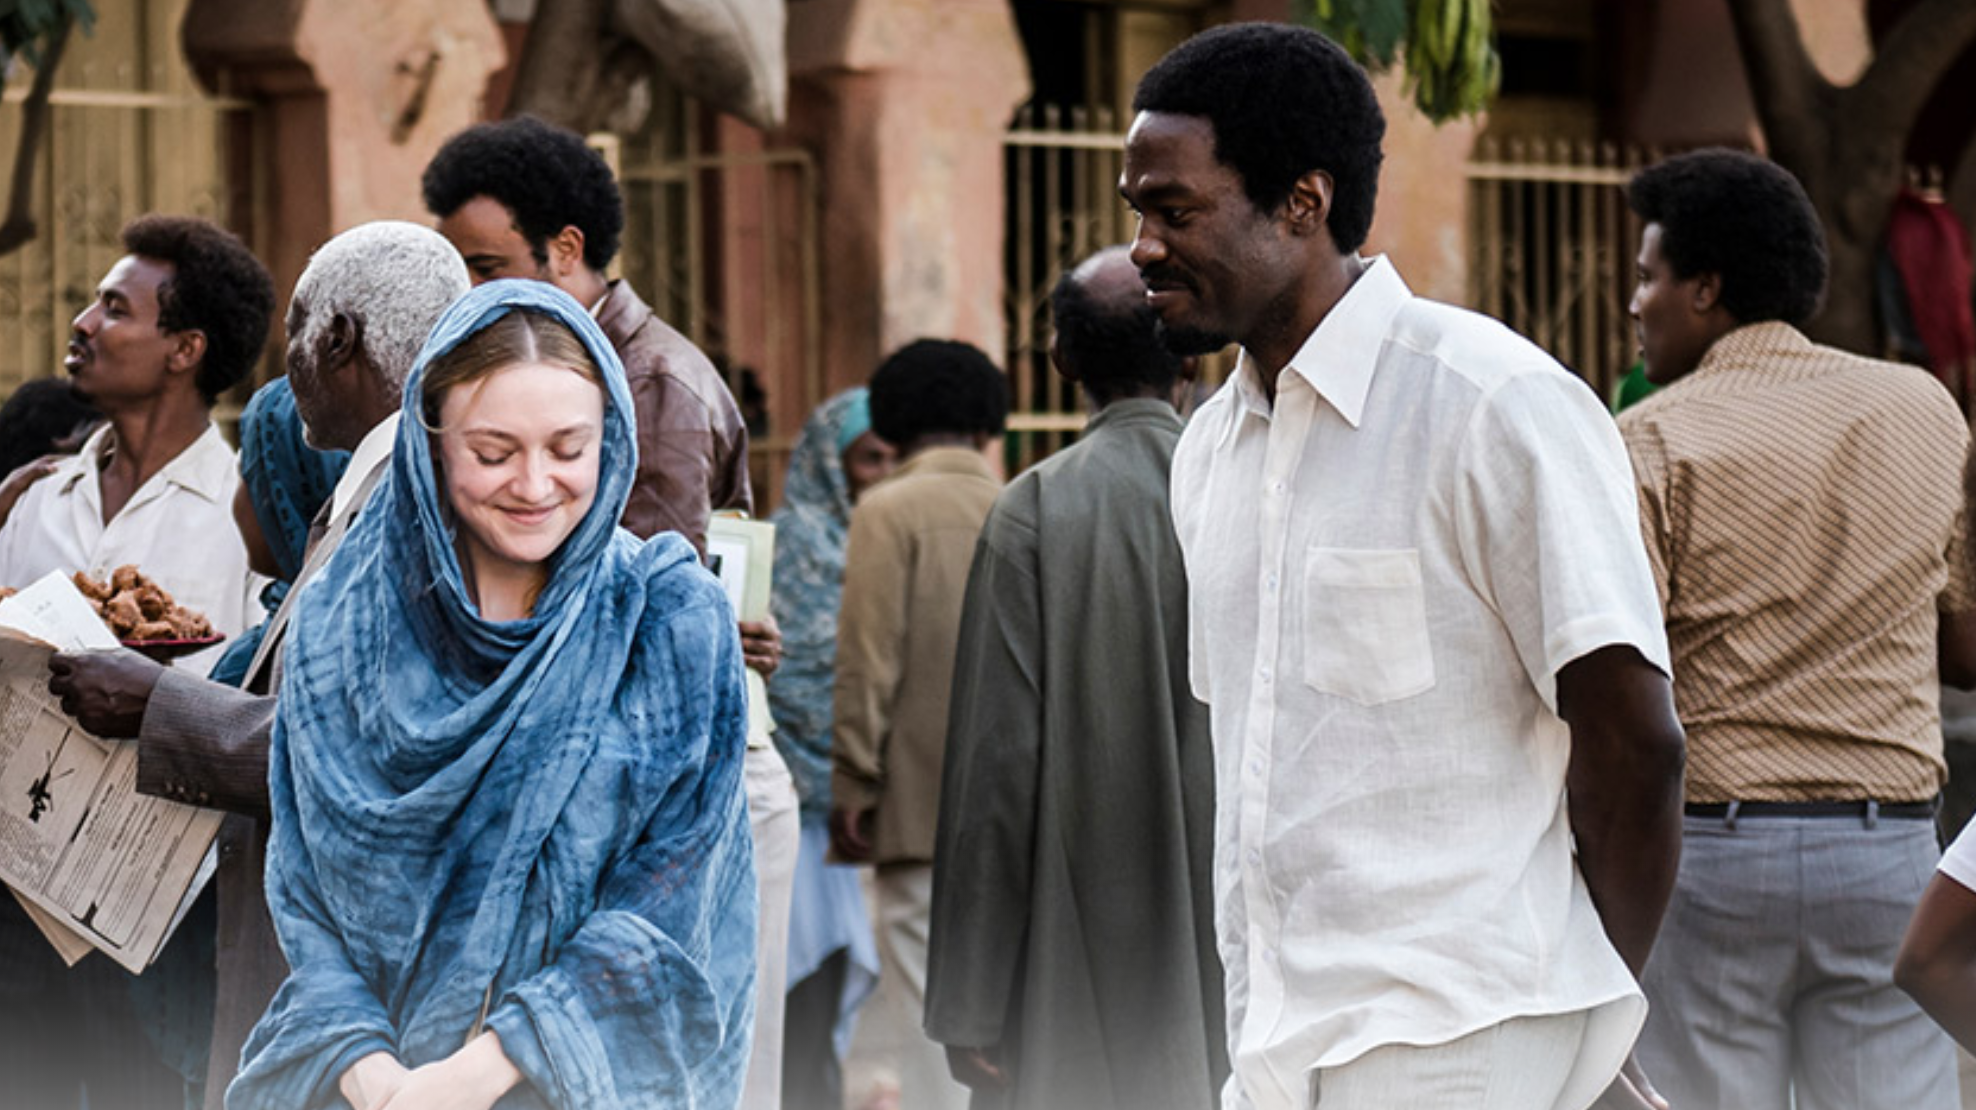 'Sweetness in the Belly' Producers, Filmmaker Address Controversy Over Dakota Fanning Refugee Drama